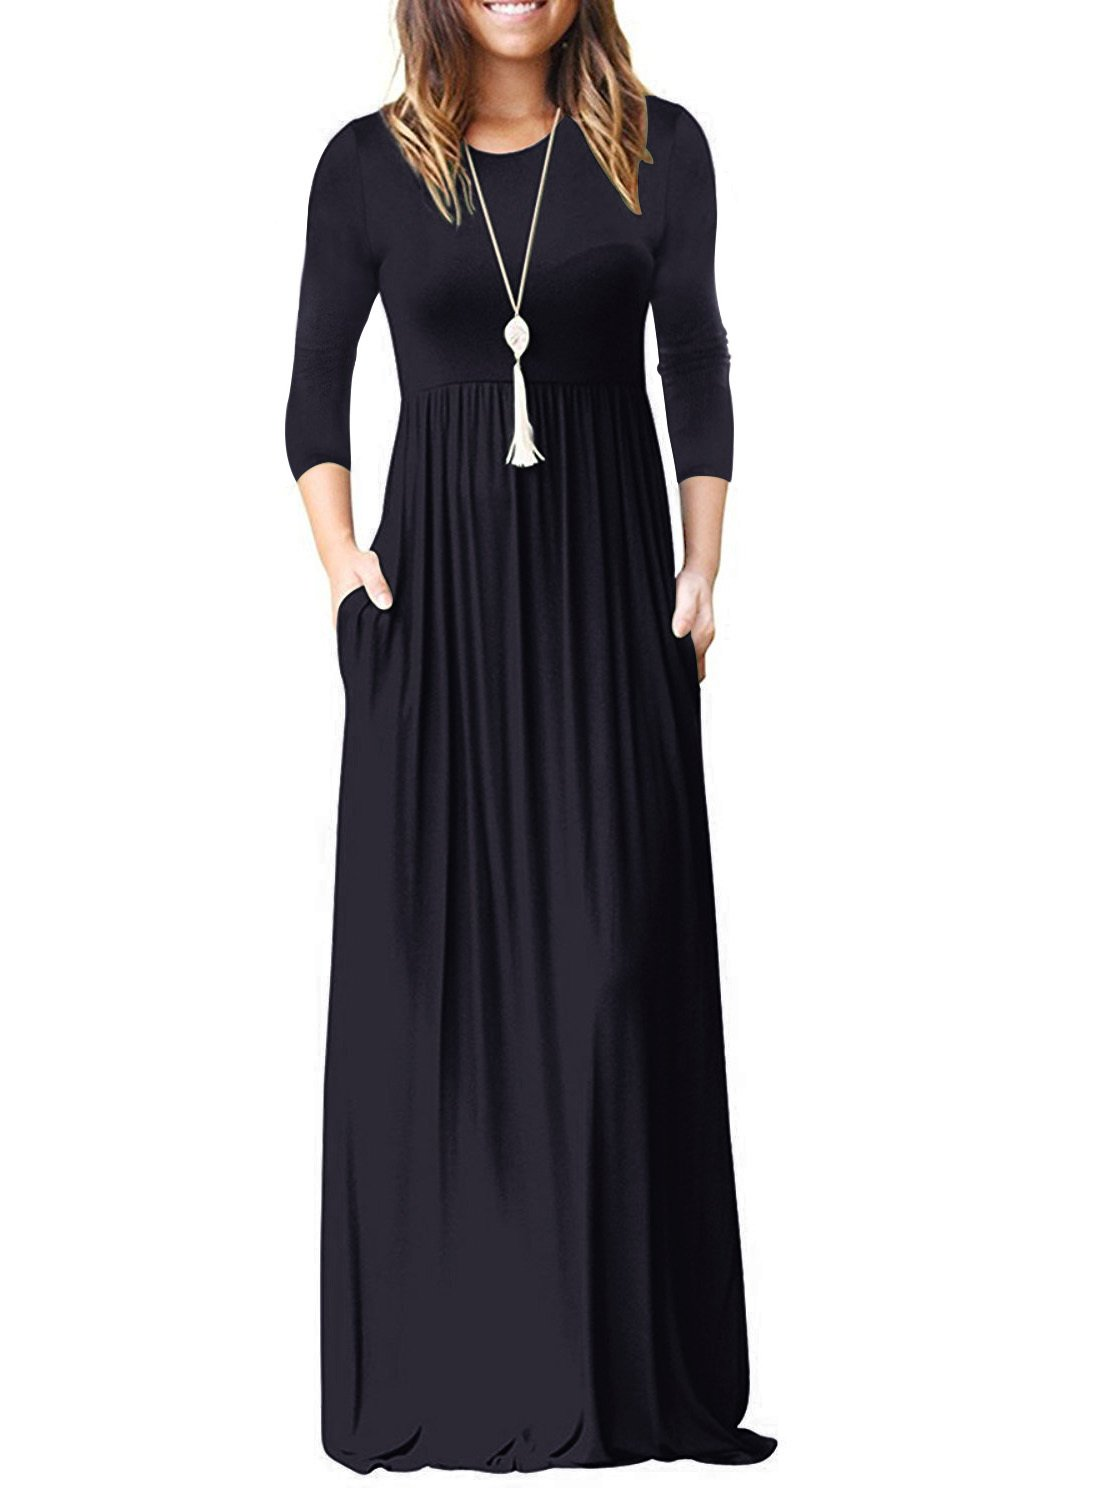 Adreamly Women's 3/4 Sleeve Loose Plain Long Dresses Casual Maxi Dress with Pockets Navy Blue 2X-Large